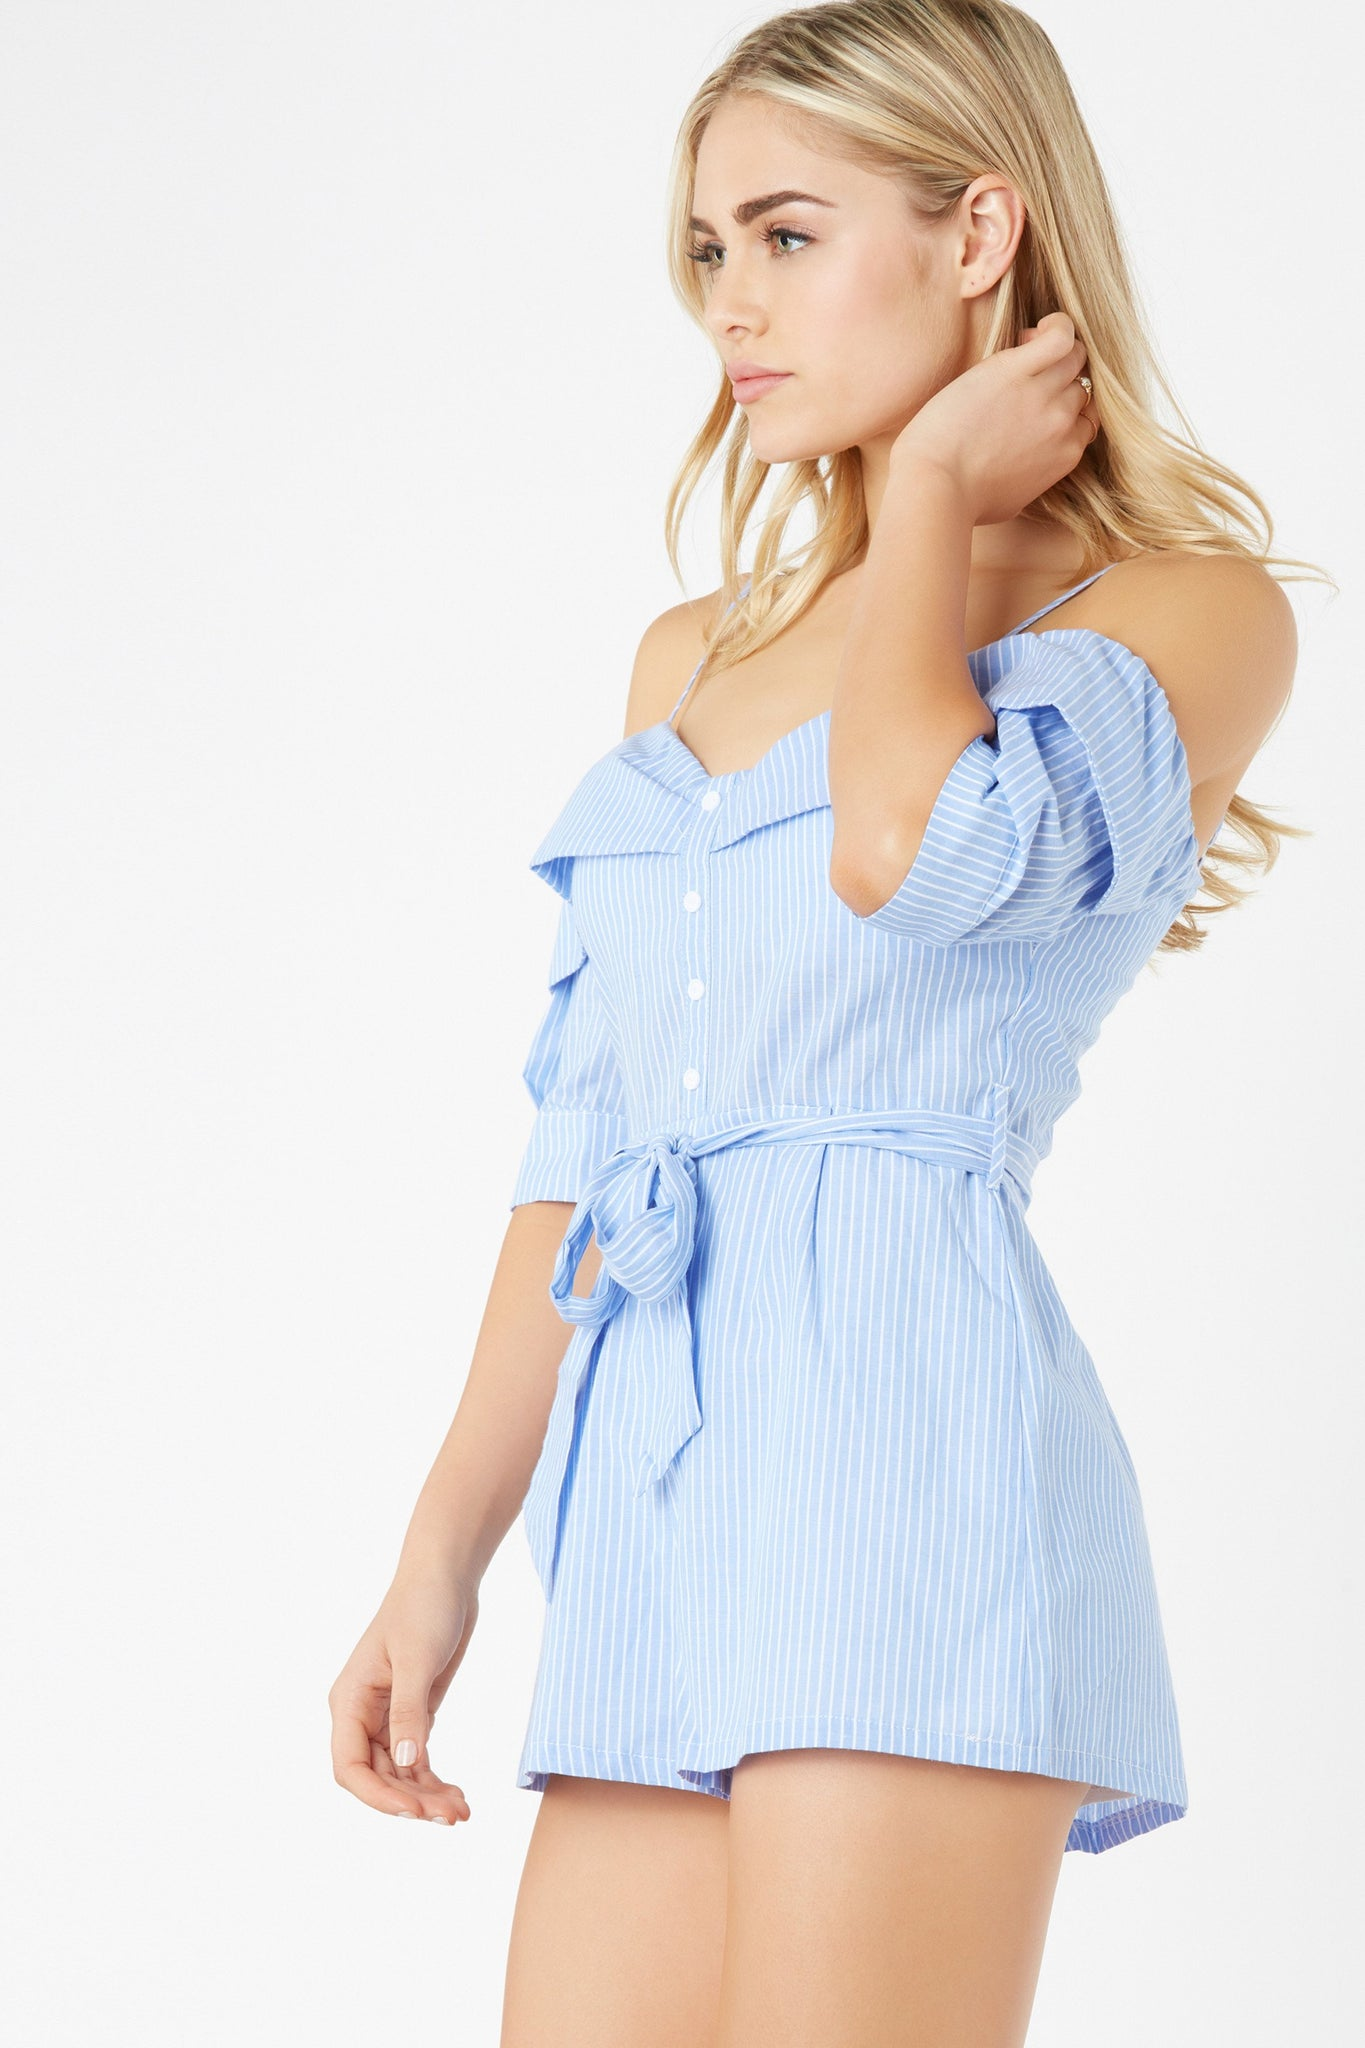 Flirty cold shoulder romper with pin stripe pattern throughout. Padded bust with sweetheart neckline and faux button detailing in front.